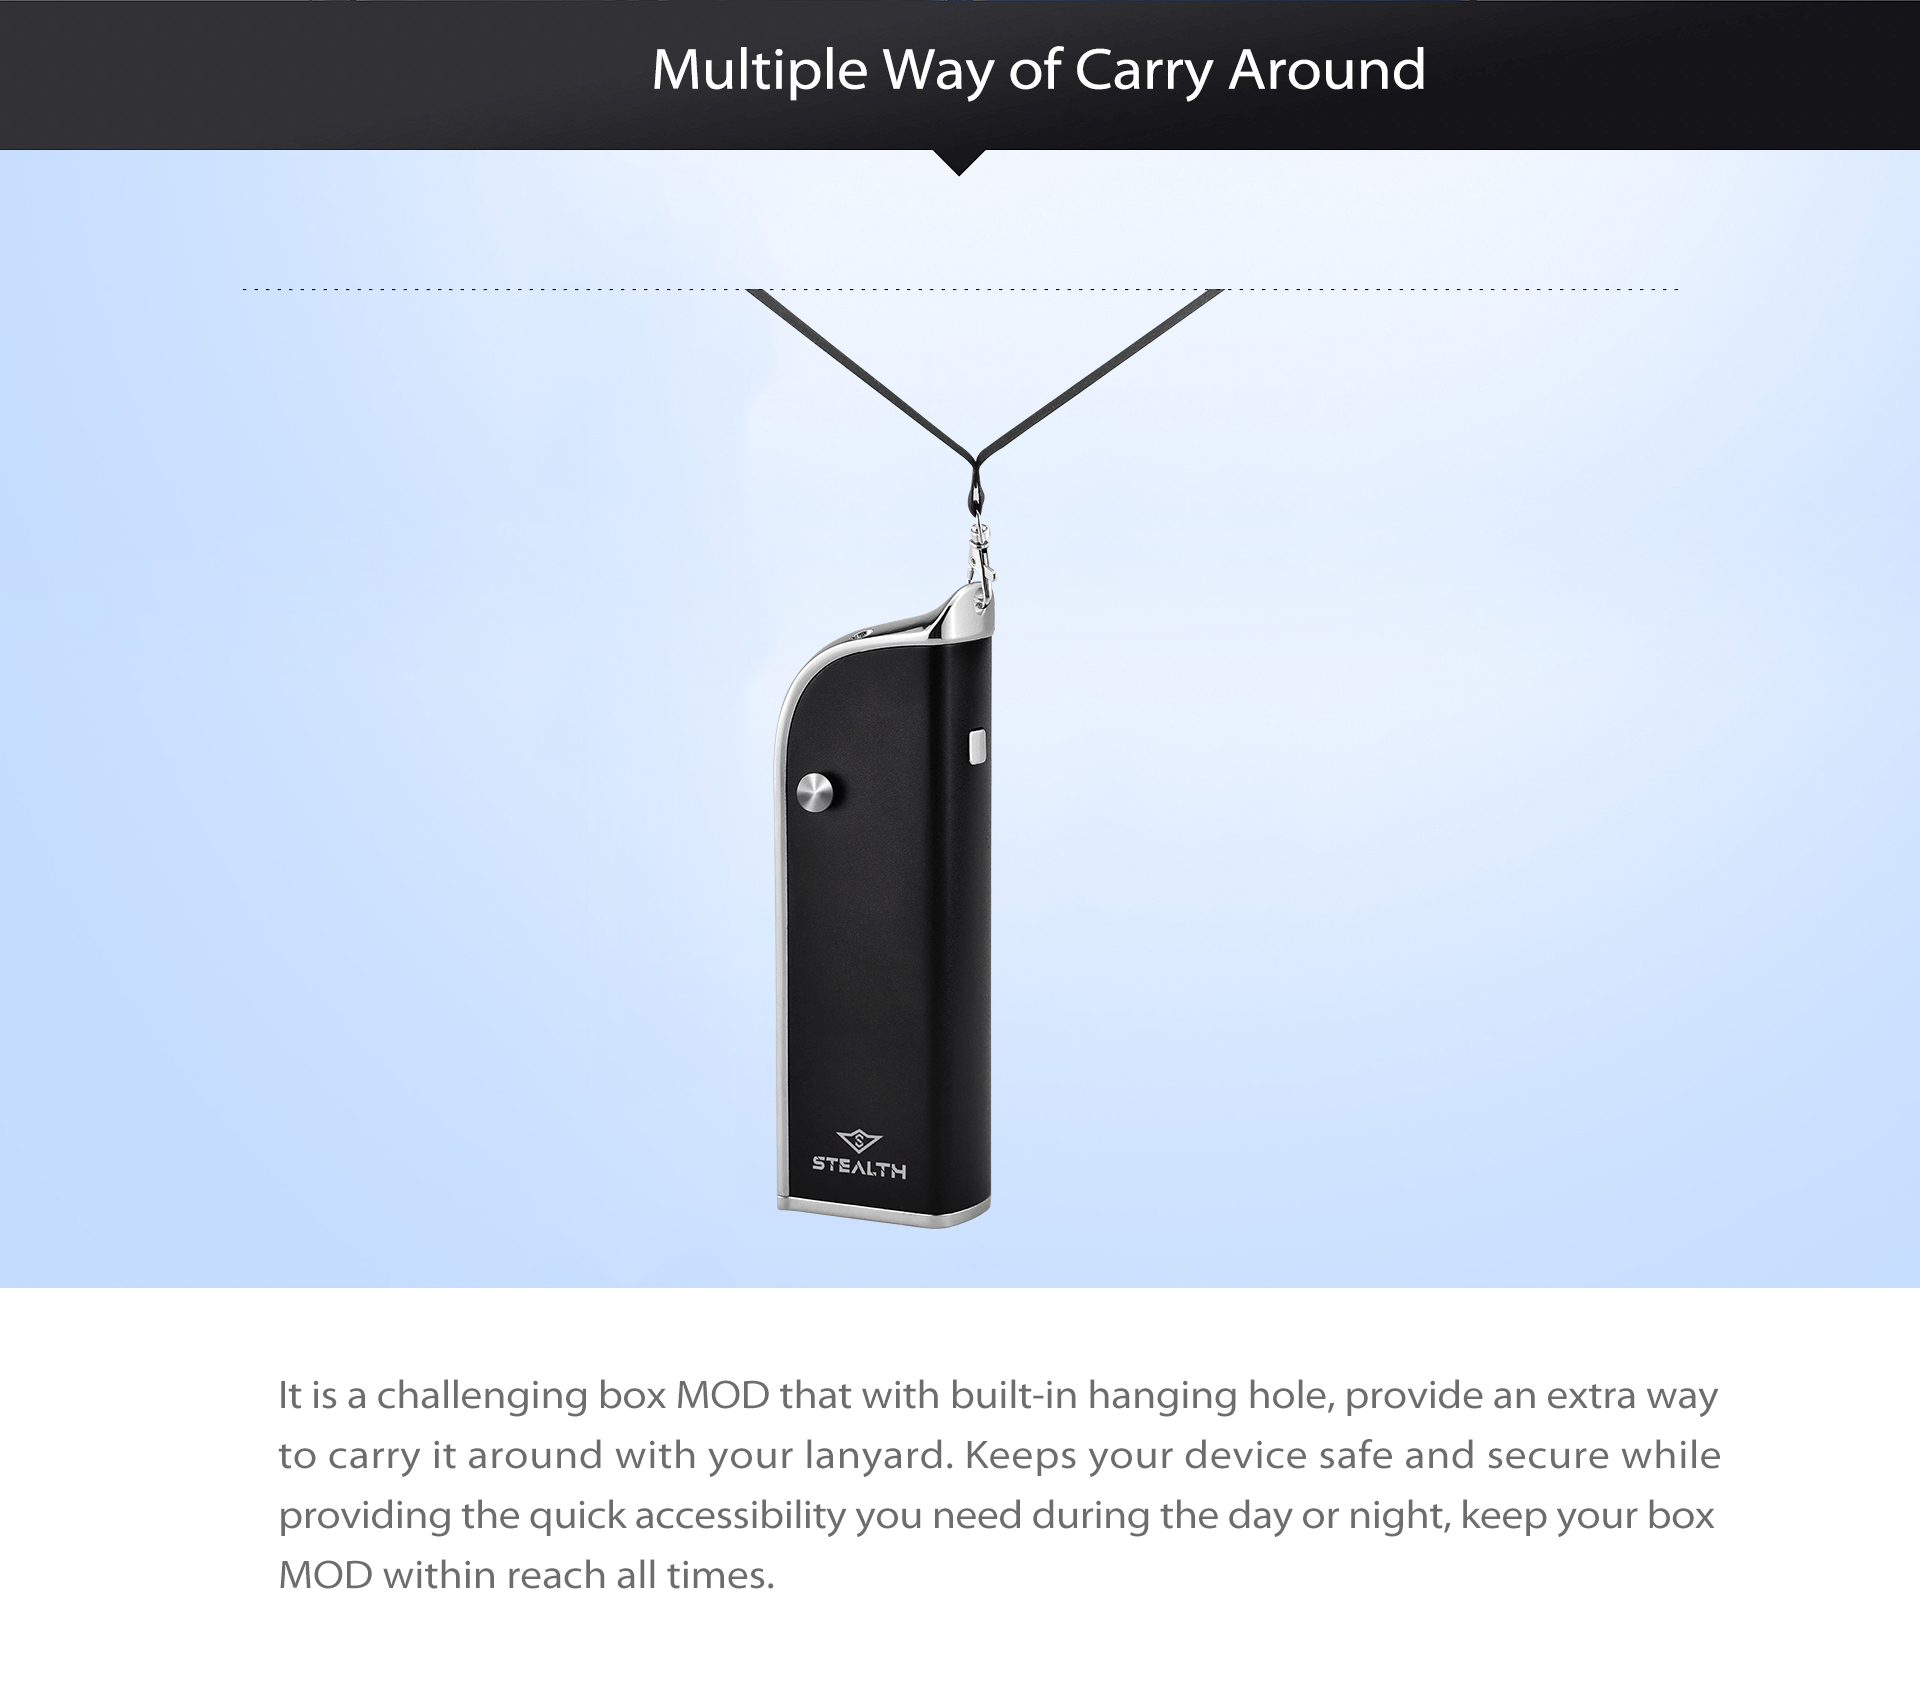 Yocan Stealth provides multiple way of carry around.